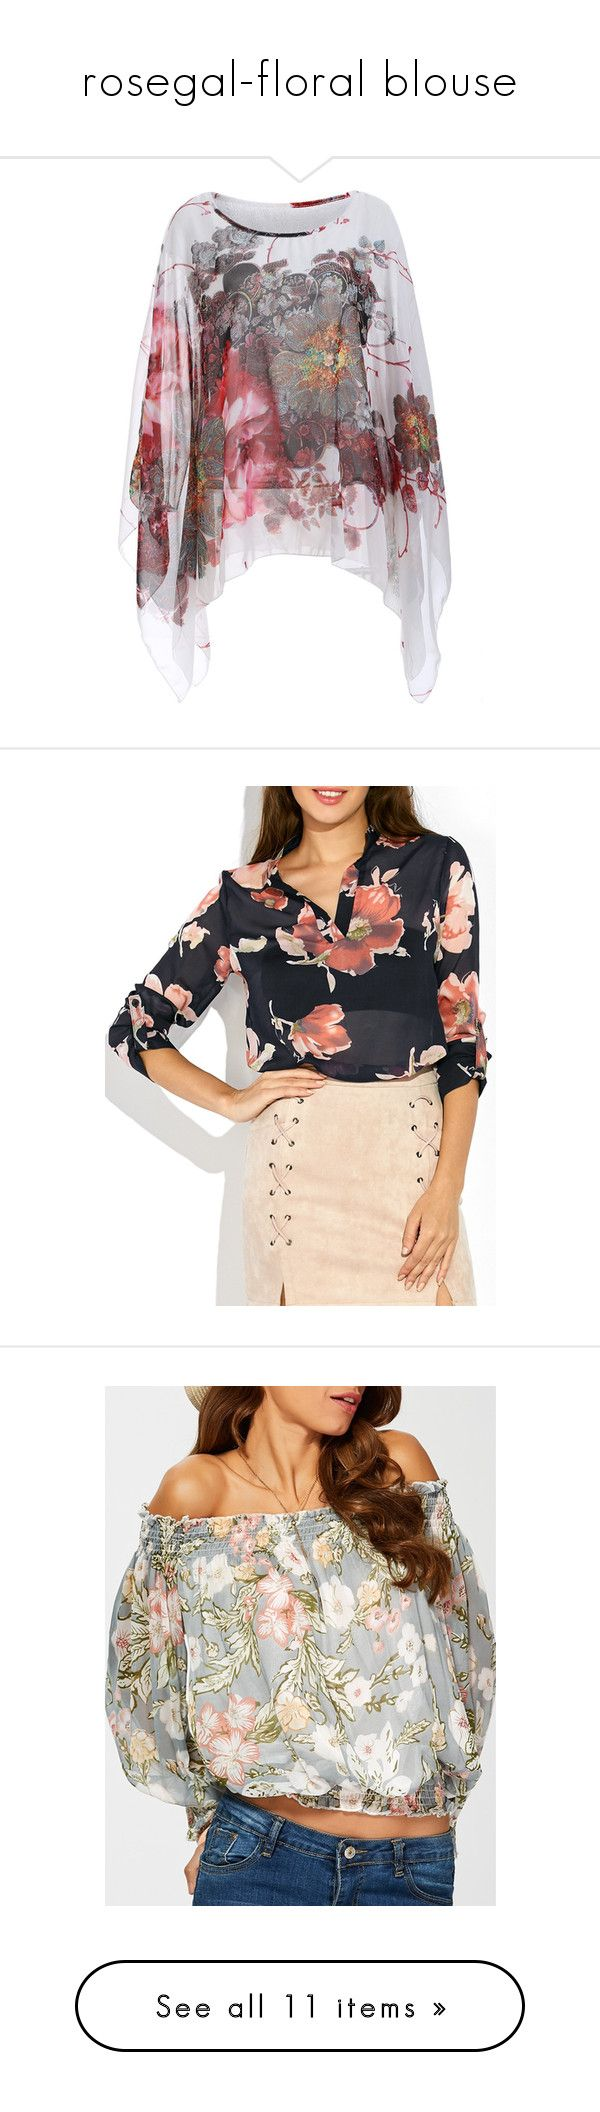 """""""rosegal-floral blouse"""" by fshionme ❤ liked on Polyvore featuring tops, blouses, bat sleeve tops, batwing sleeve blouse, chiffon tops, batwing sleeve tops, chiffon blouse, floral tops, floral blouse and flower print blouse"""